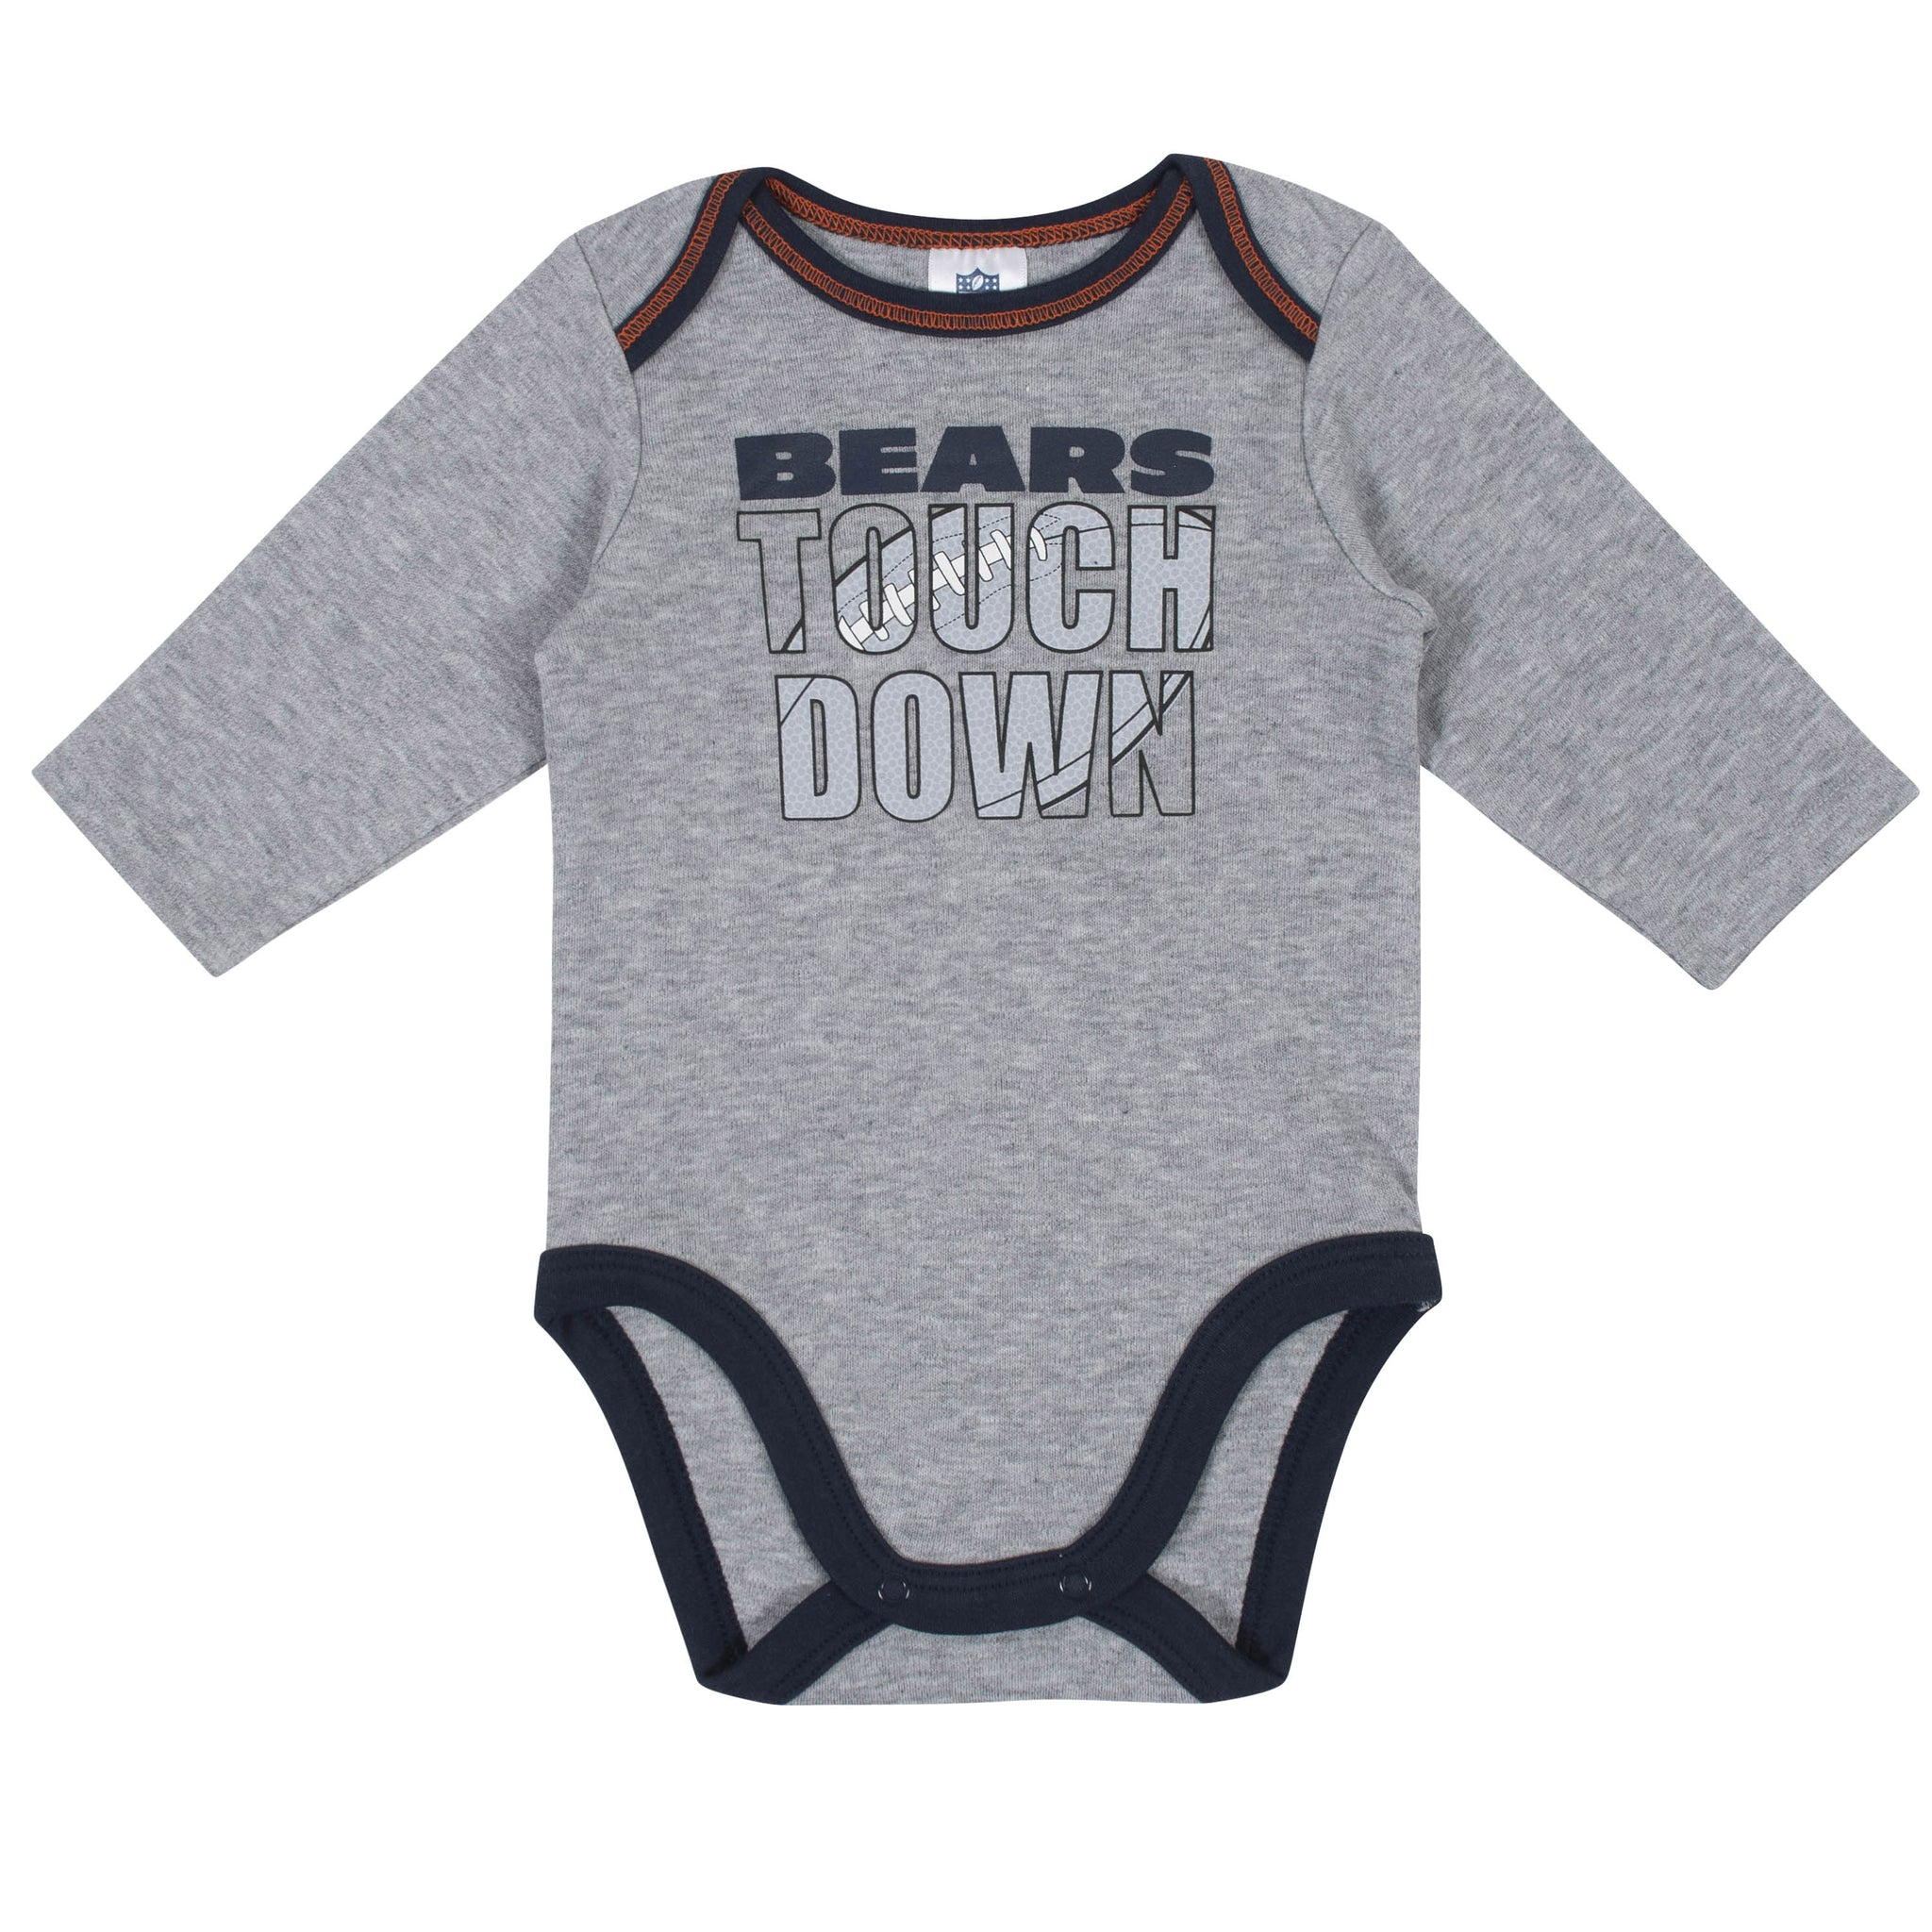 Baby Boys Chicago Bears Long Sleeve Bodysuit, 2-pack -Gerber Childrenswear